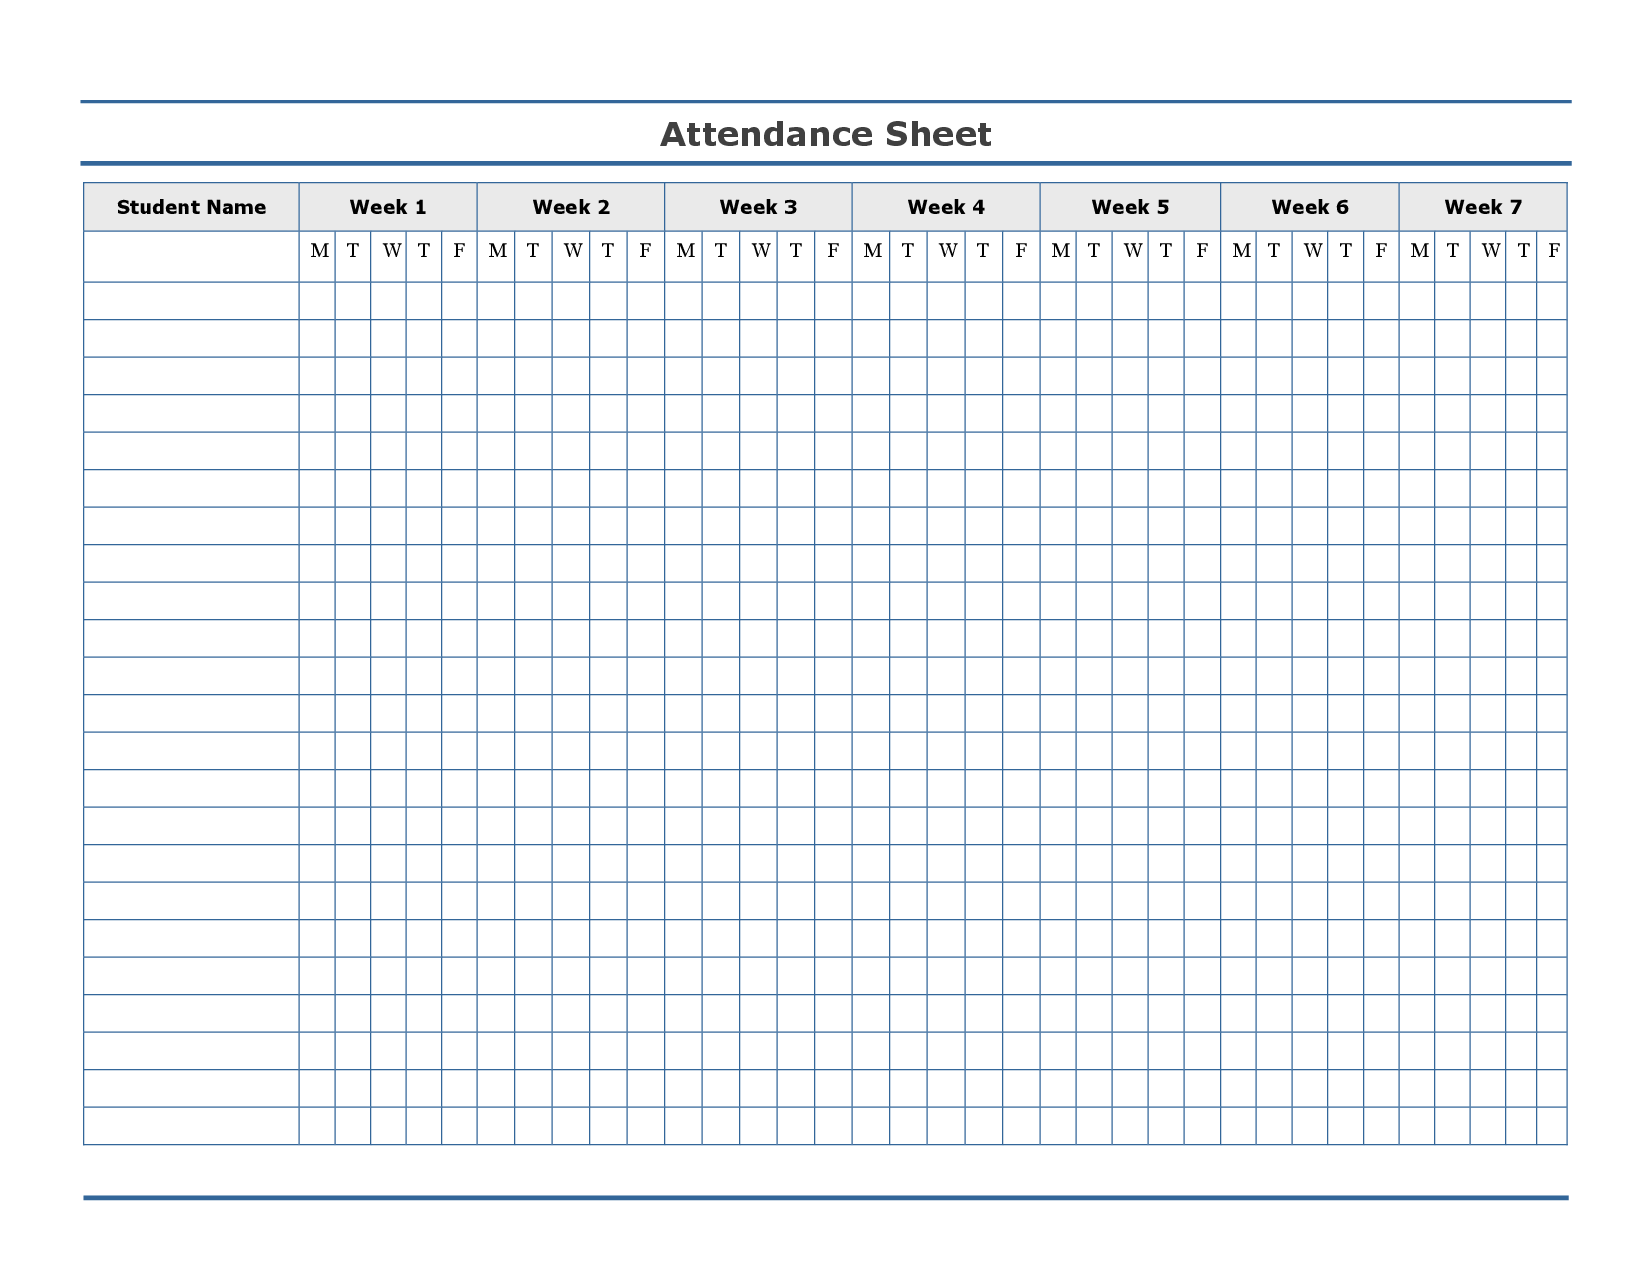 Printable Attendance Sheet For Teachers - Venturecapitalupdate.com